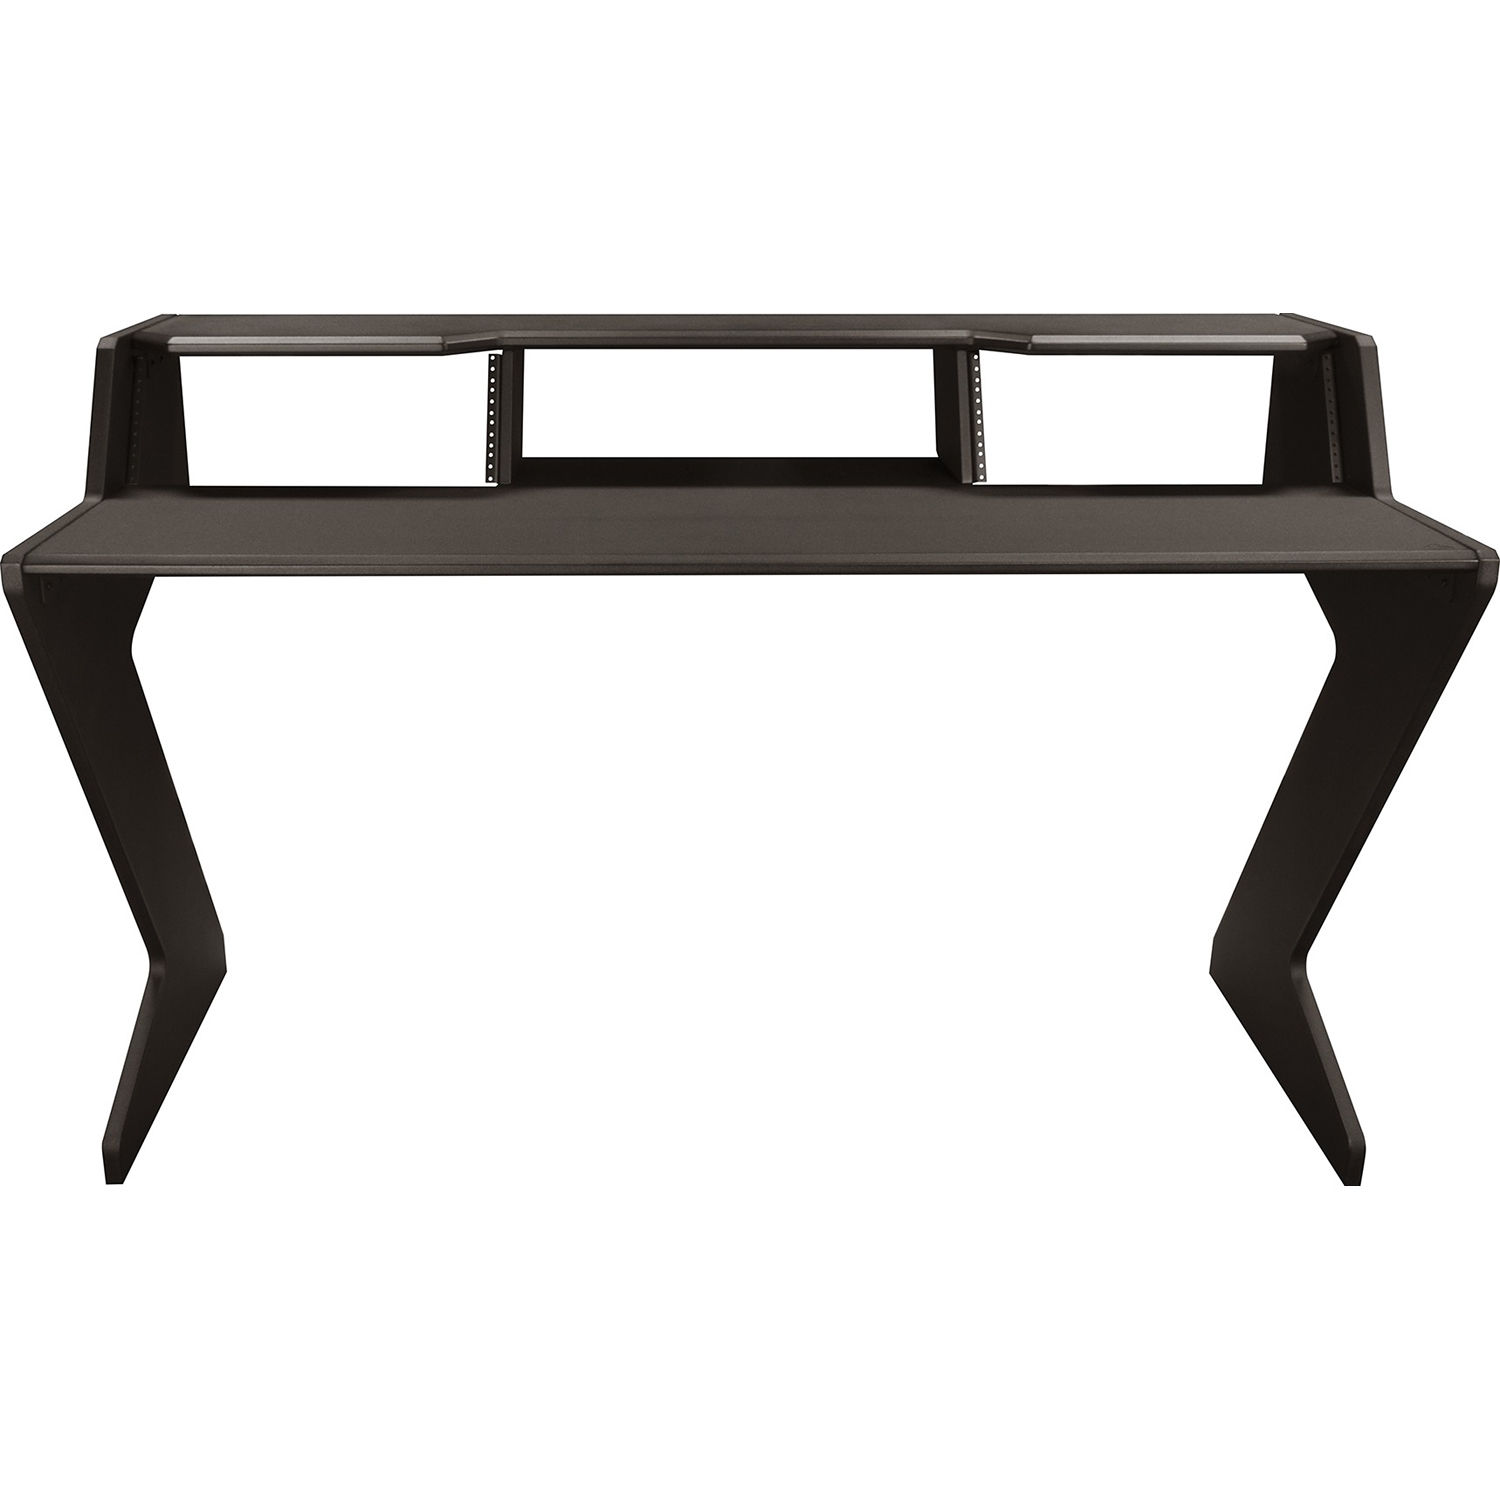 Ultimate Support Nucleus Z Explorer Studio Desk With Shelf And 2 X 4 Space